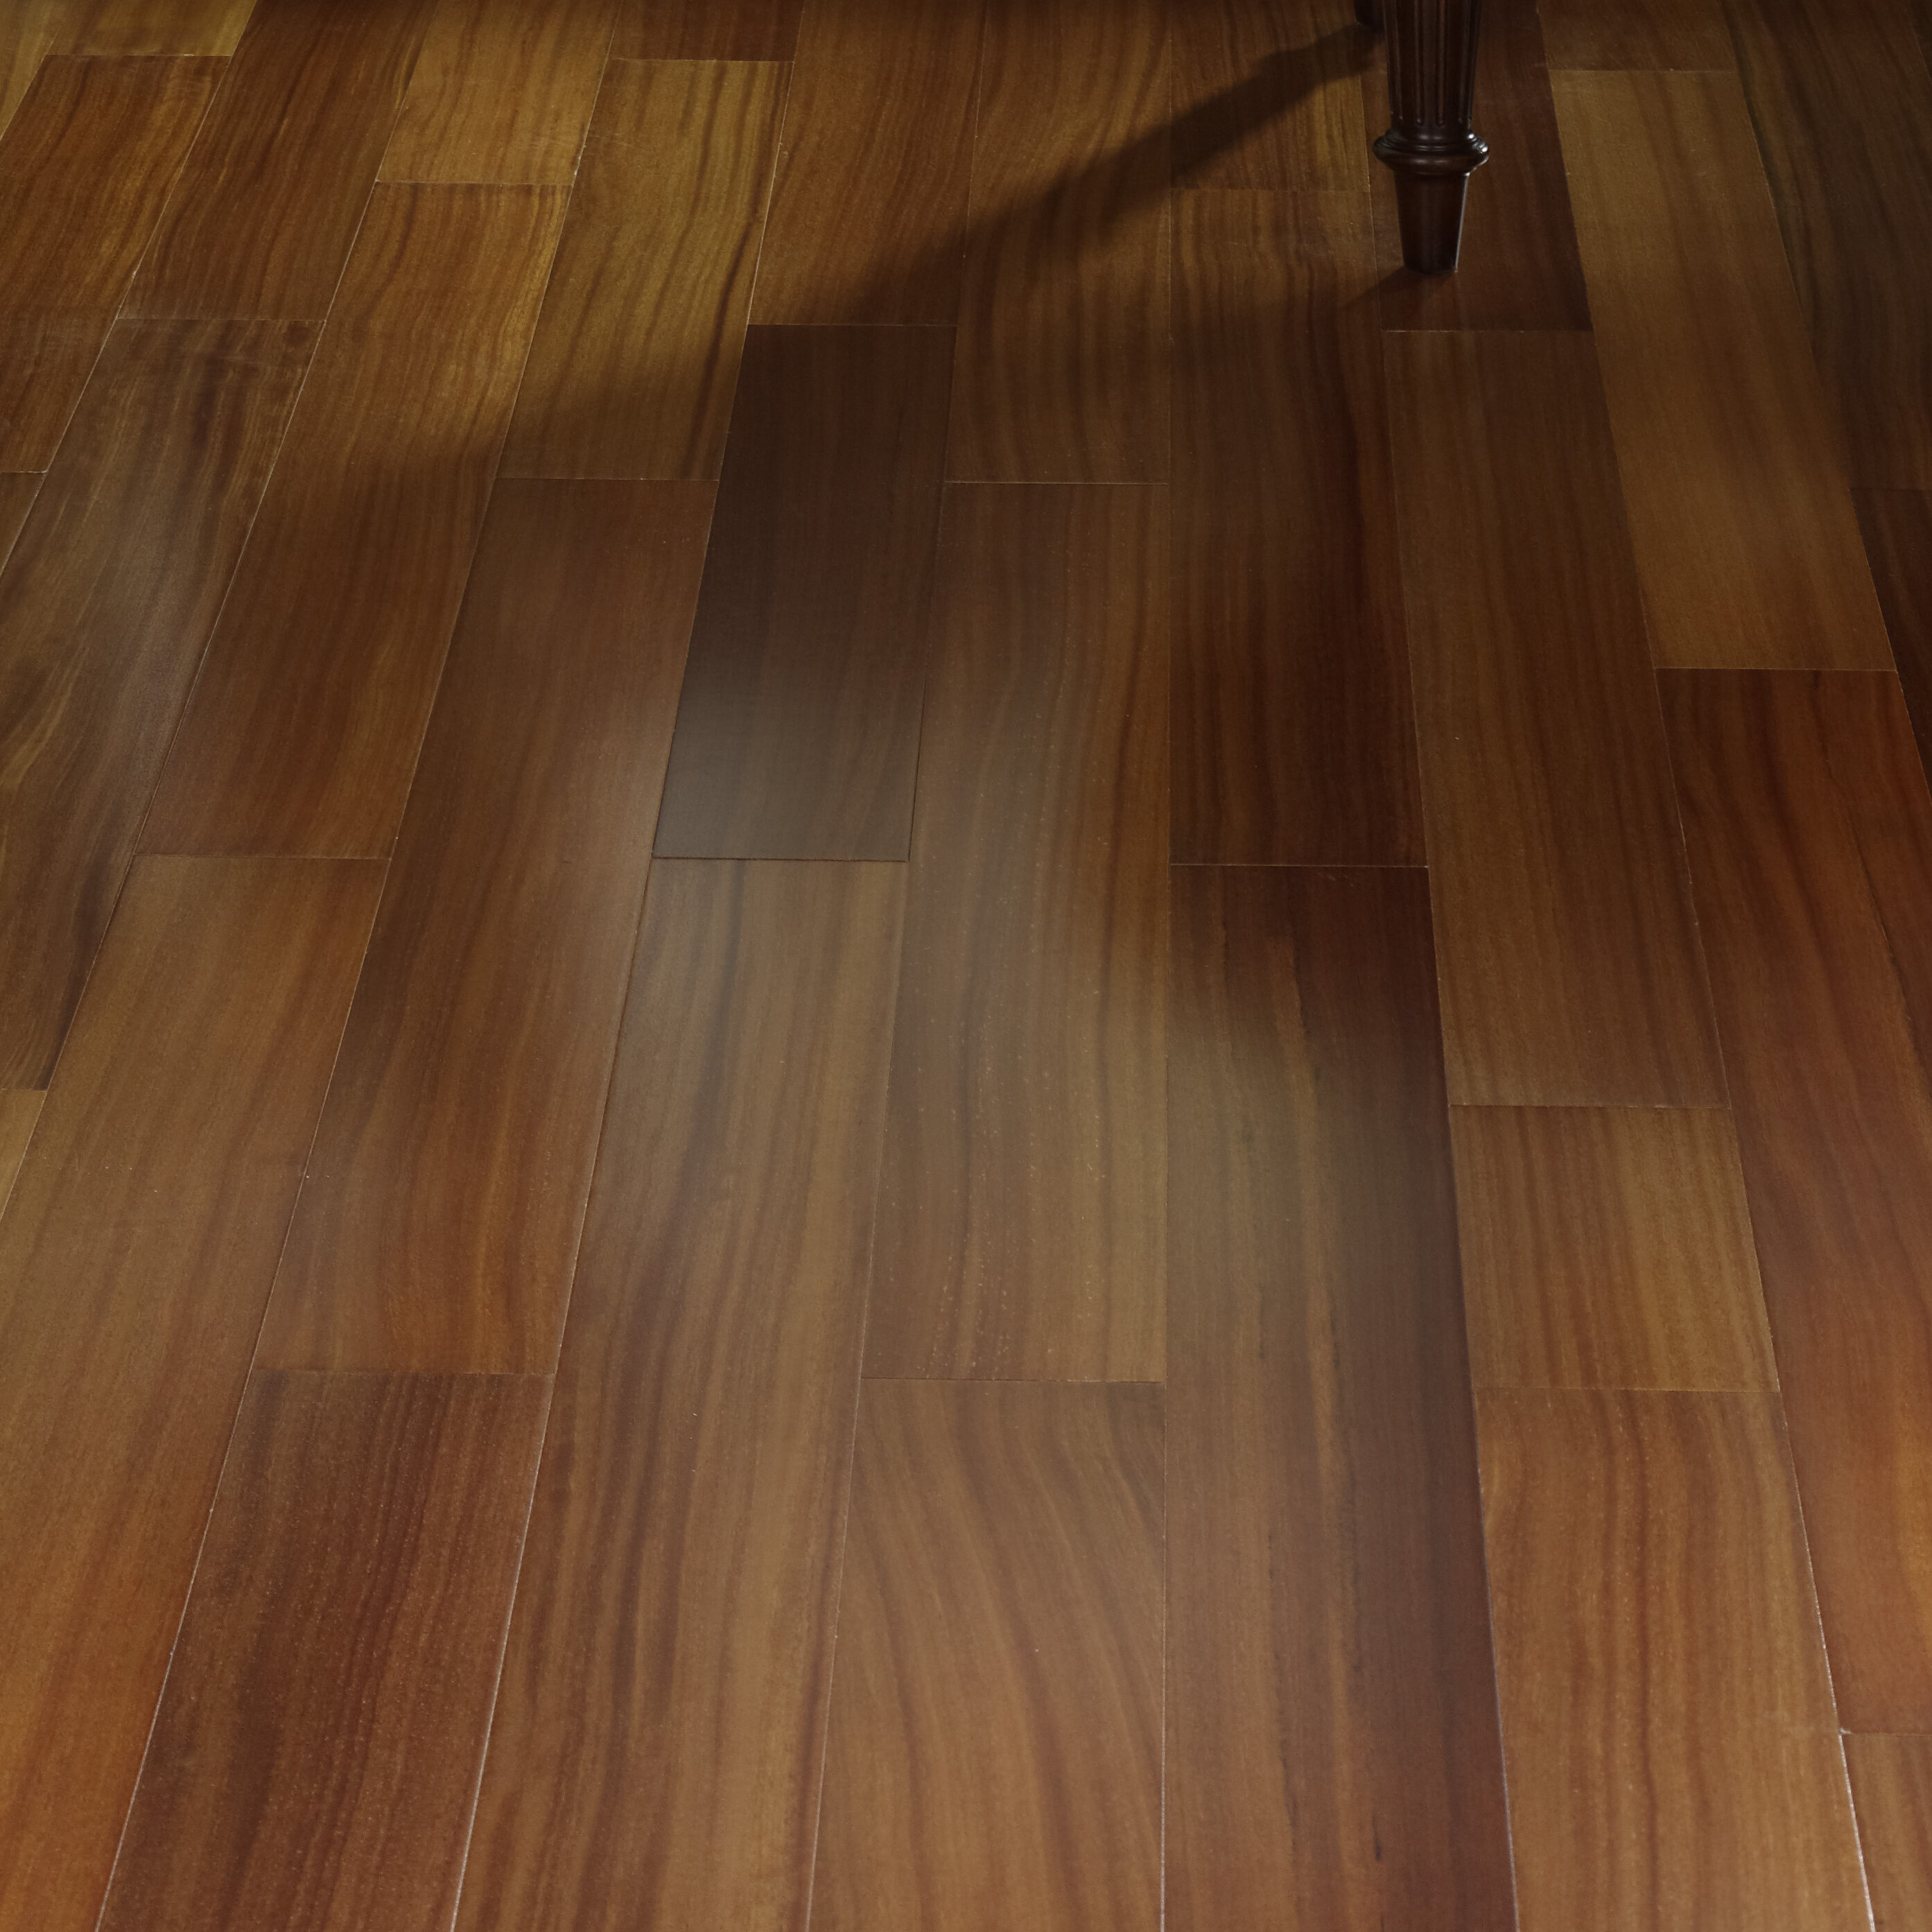 Easoon Usa 5 Engineered Brazilian Teak Hardwood Flooring In Natural Wayfair